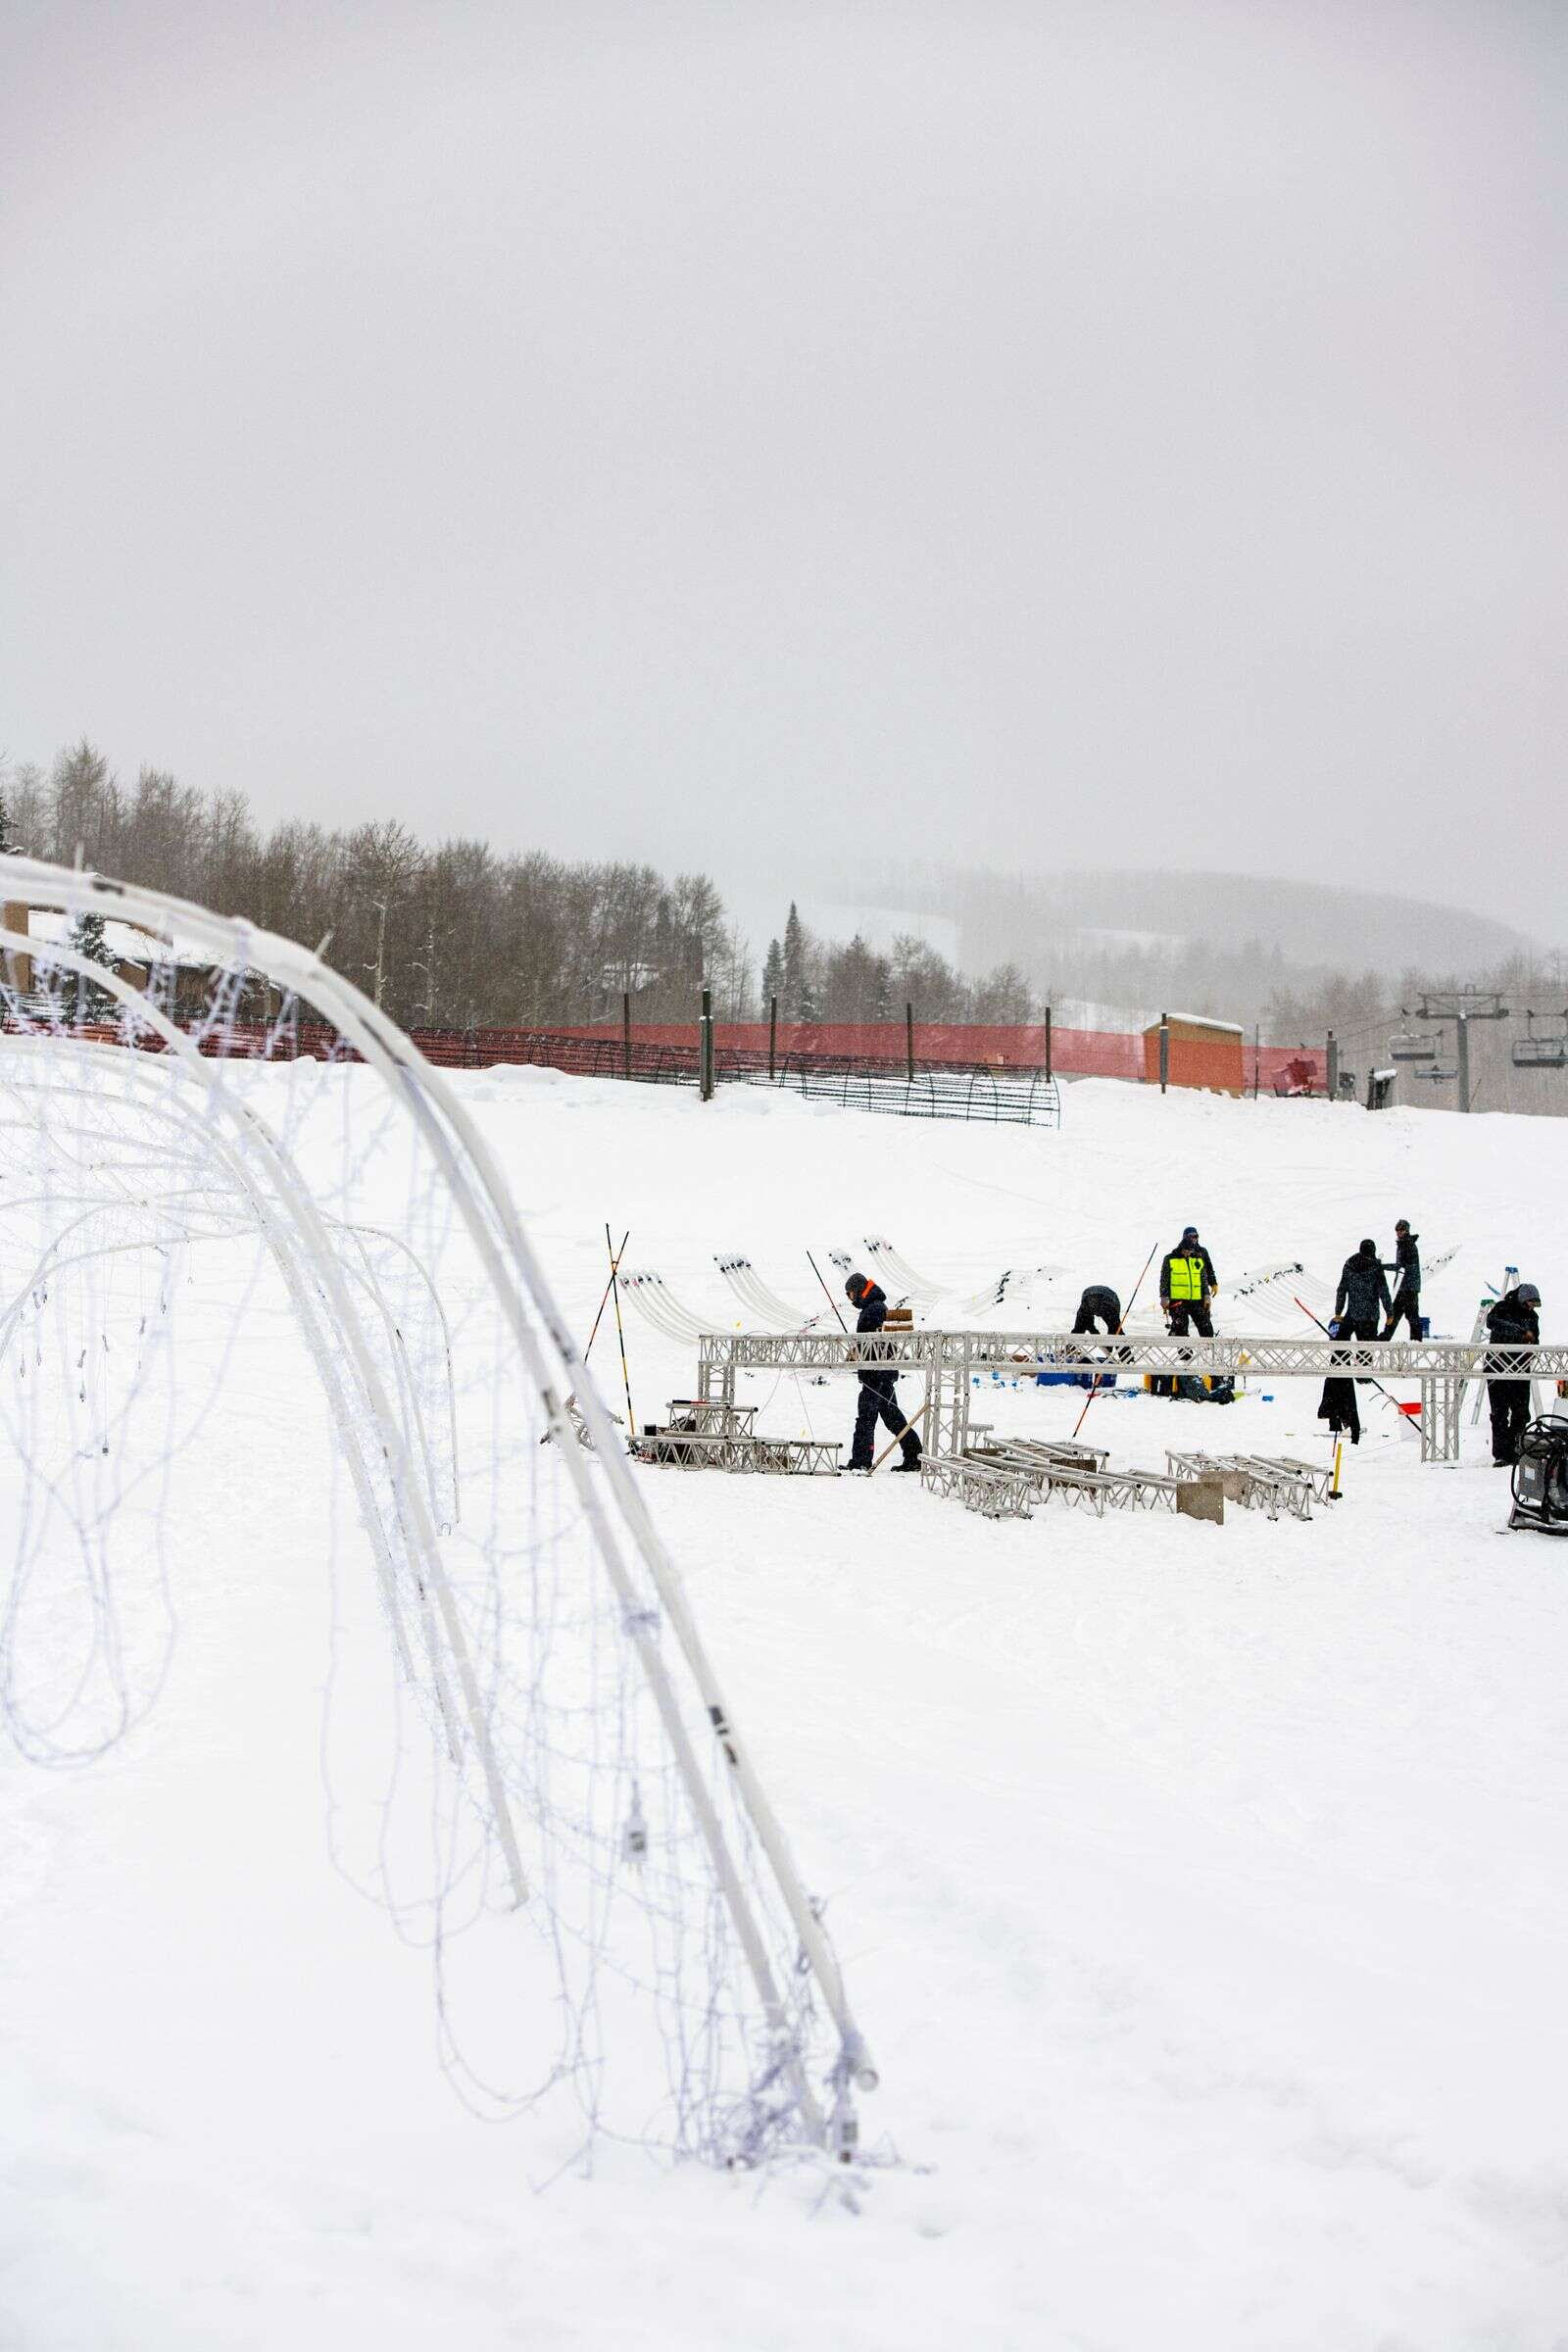 Construction on the lighting installments for the light festival in Snowmass Village on Monday, Dec. 14, 2020. (Kelsey Brunner/The Aspen Times)